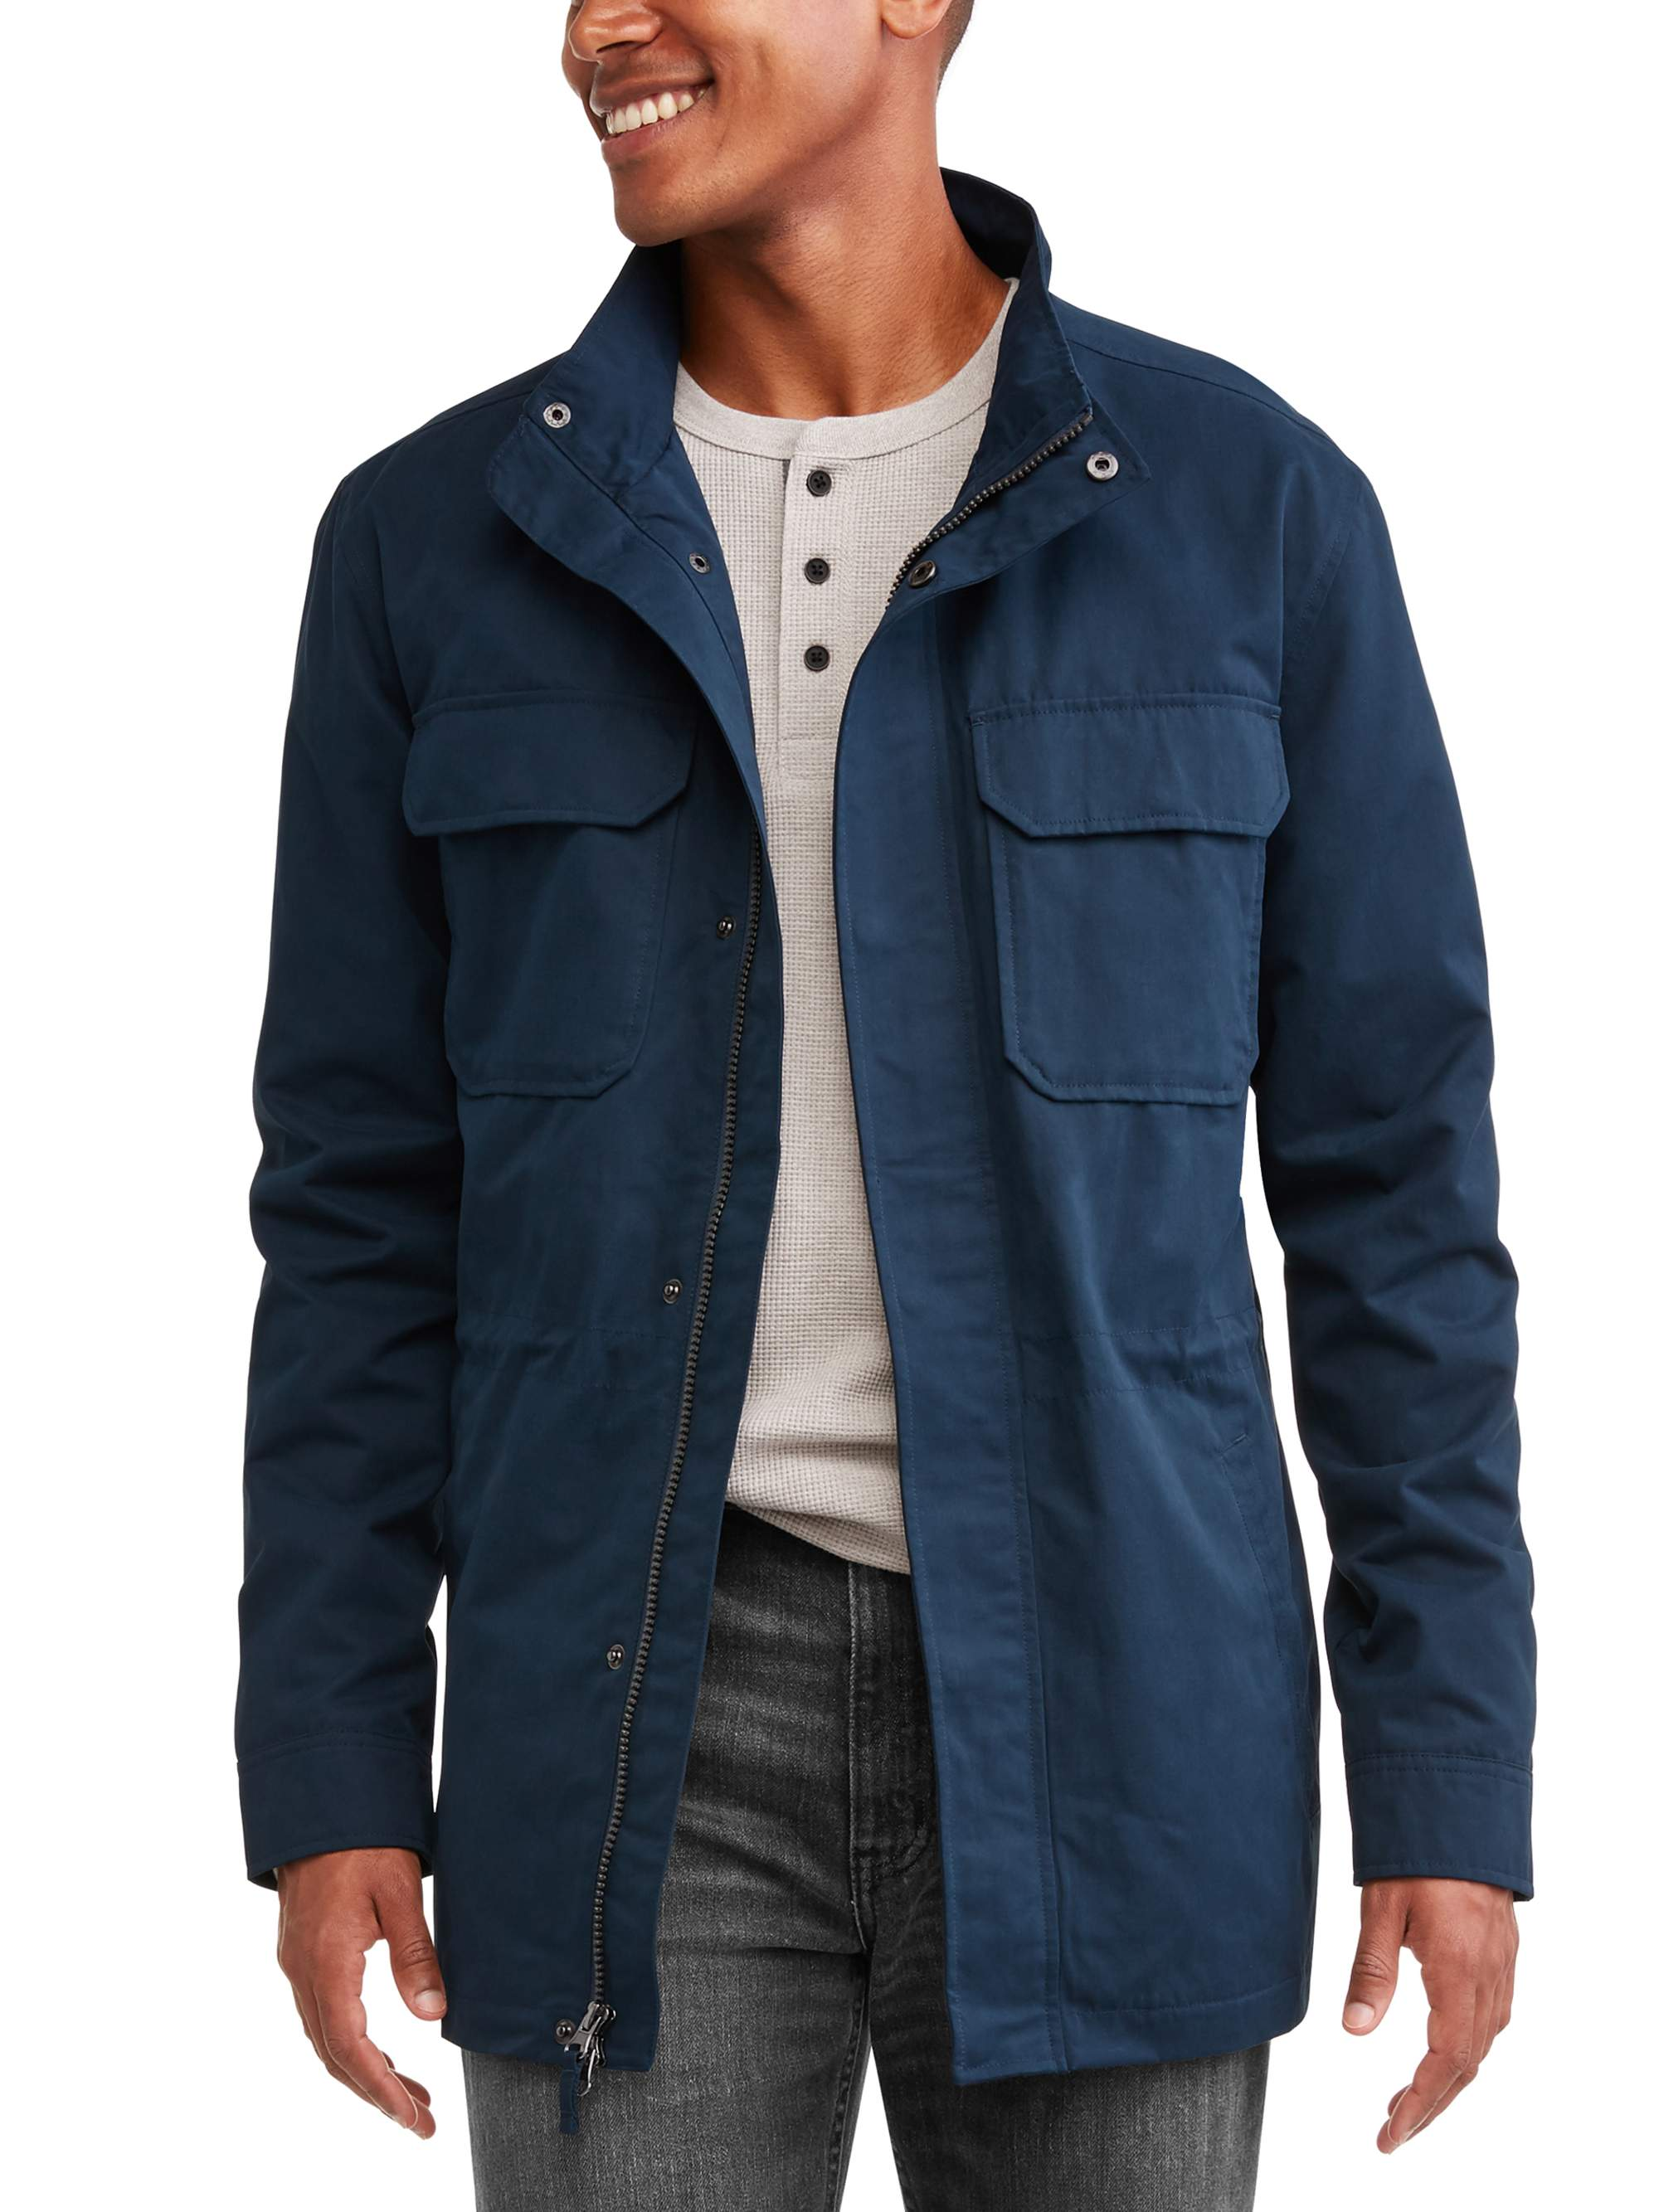 Men's Field Jacket, up to Size 5XL